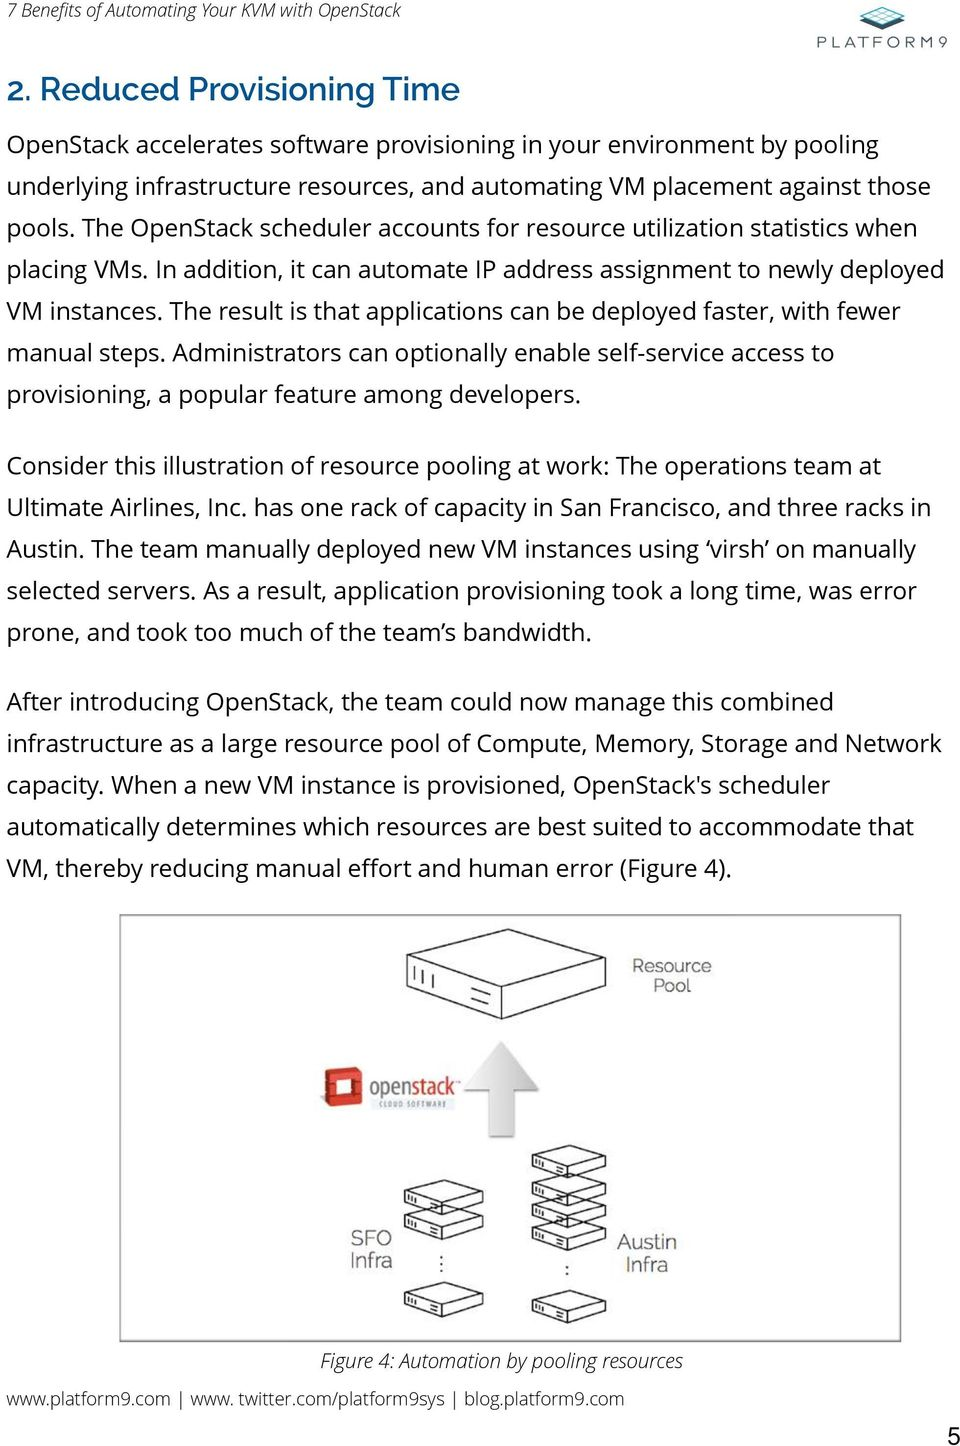 The OpenStack scheduler accounts for resource utilization statistics when placing VMs. In addition, it can automate IP address assignment to newly deployed VM instances.